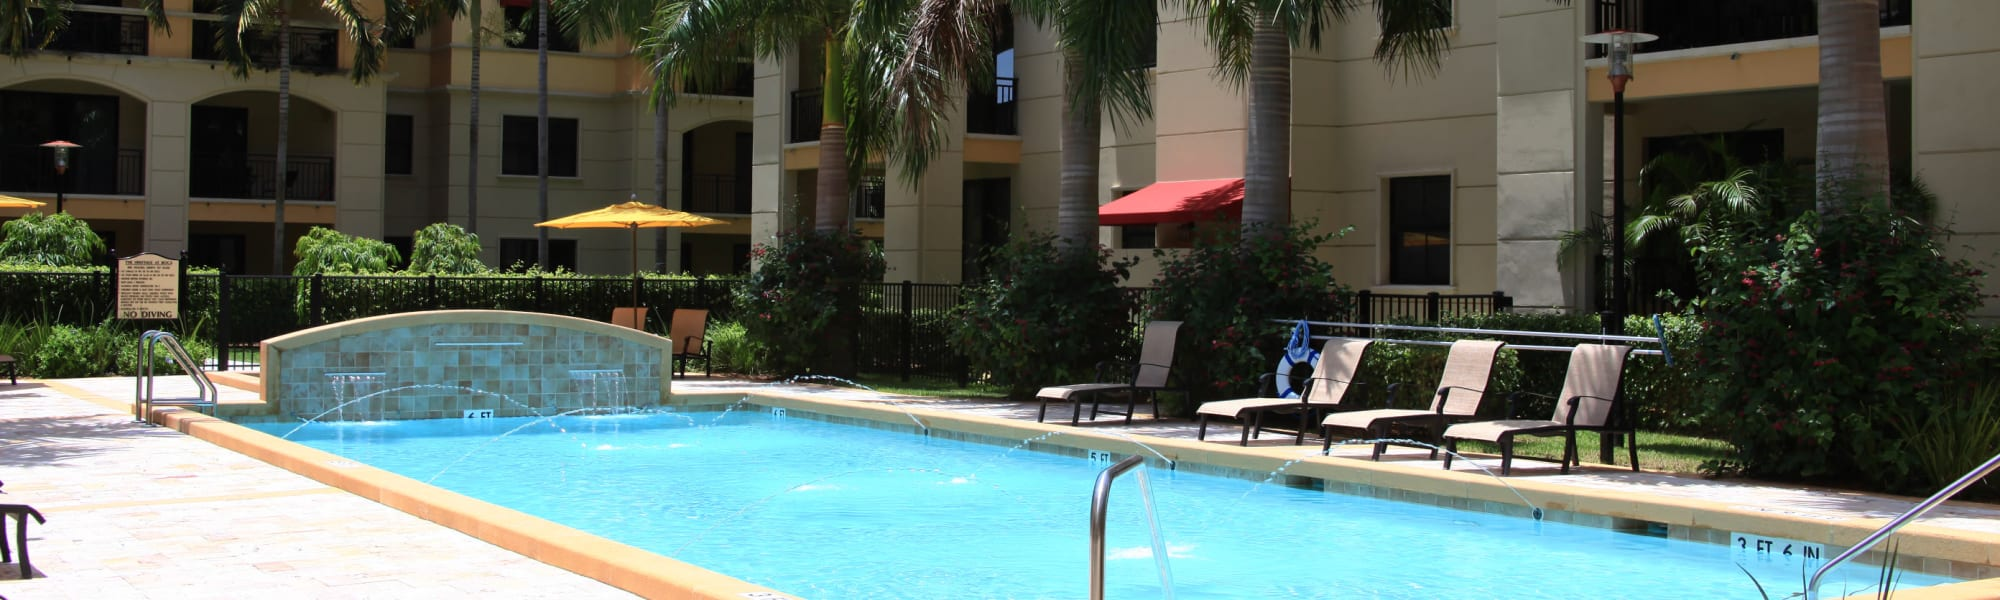 Schedule a tour of The Heritage at Boca Raton in Boca Raton, Florida